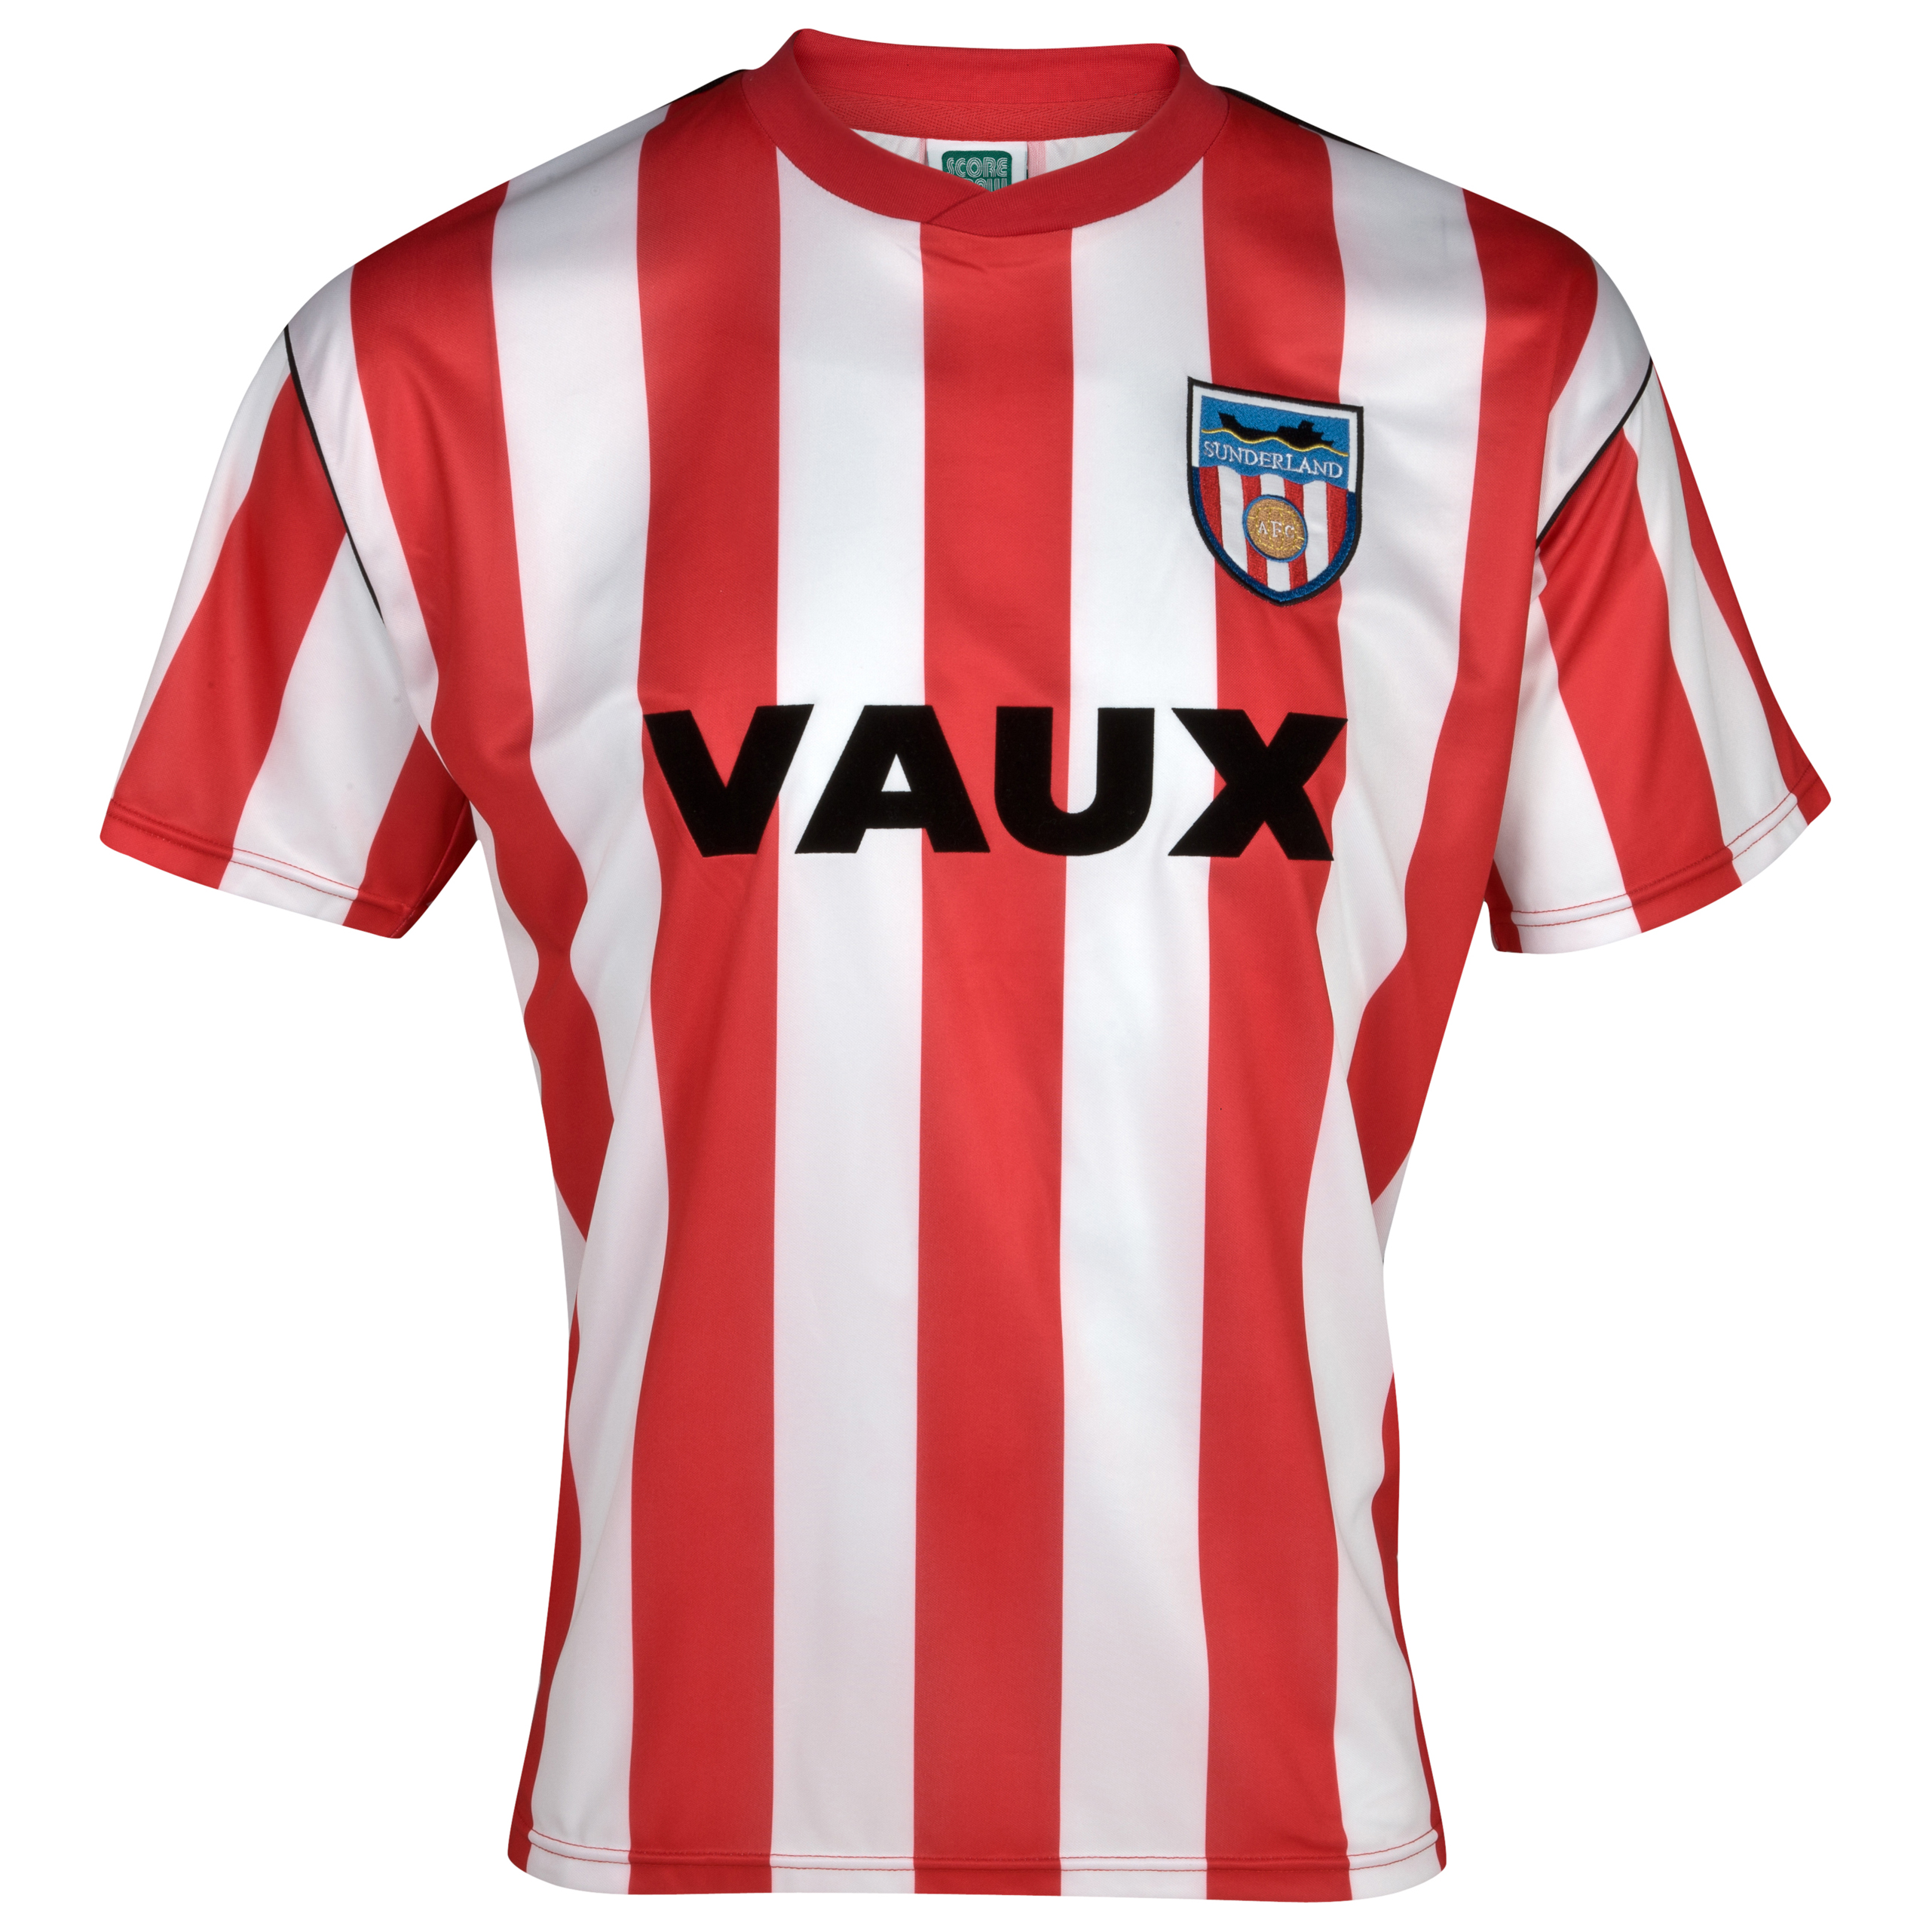 Buy Sunderland 1990 Home Kit